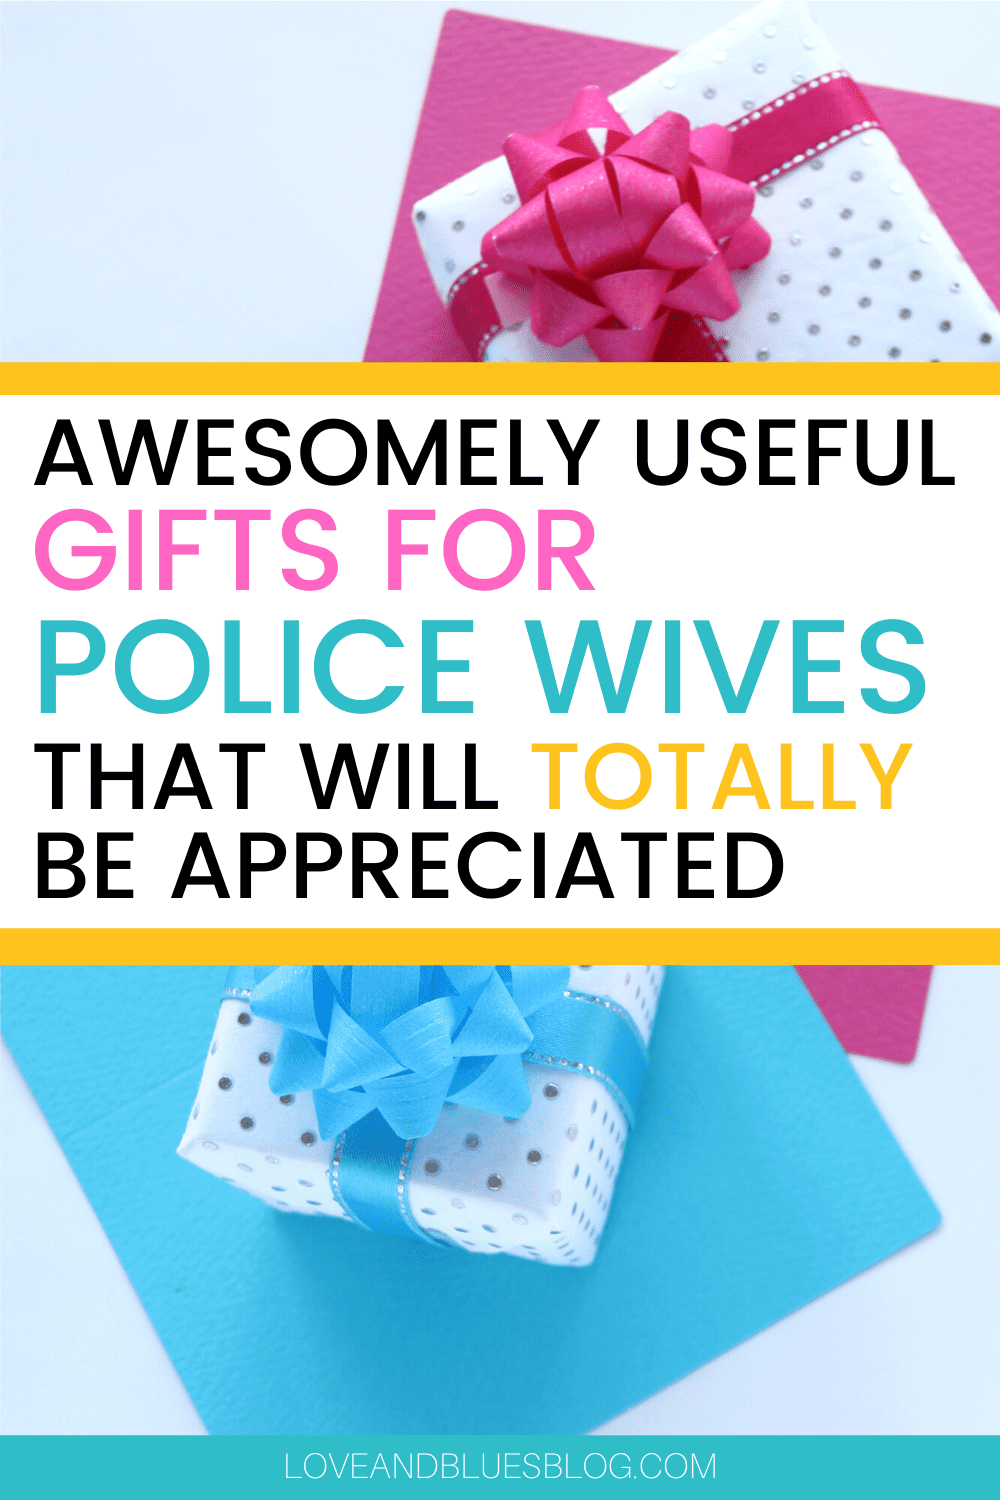 Such great ideas for police wife gifts! I think any woman would appreciate these though.